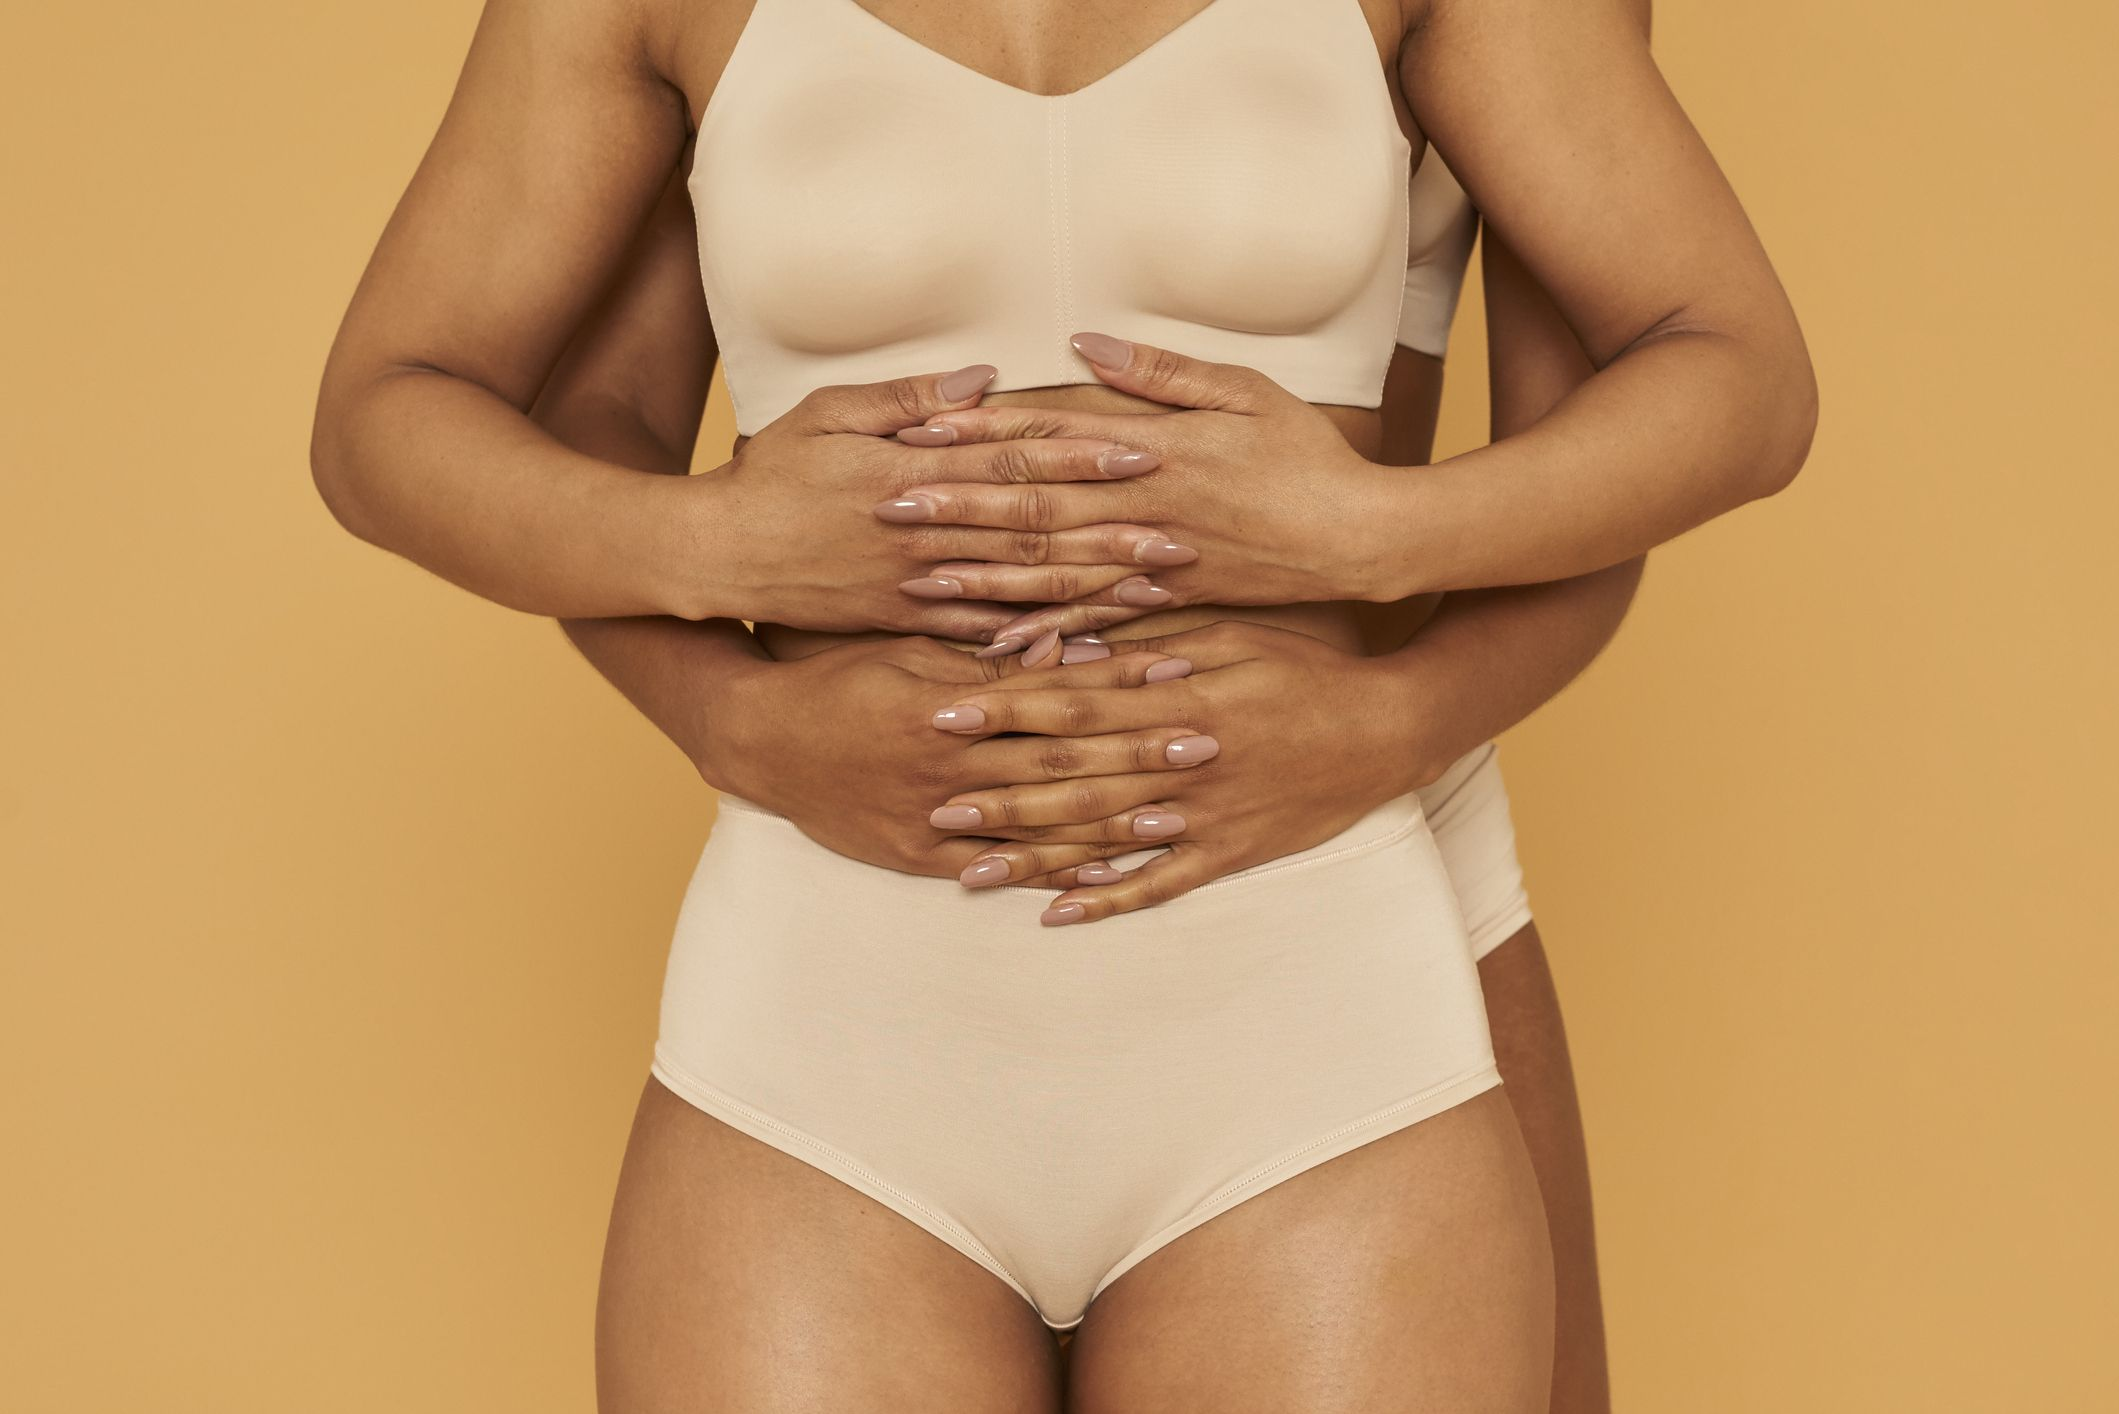 Can chronic appendicitis cause weight gain